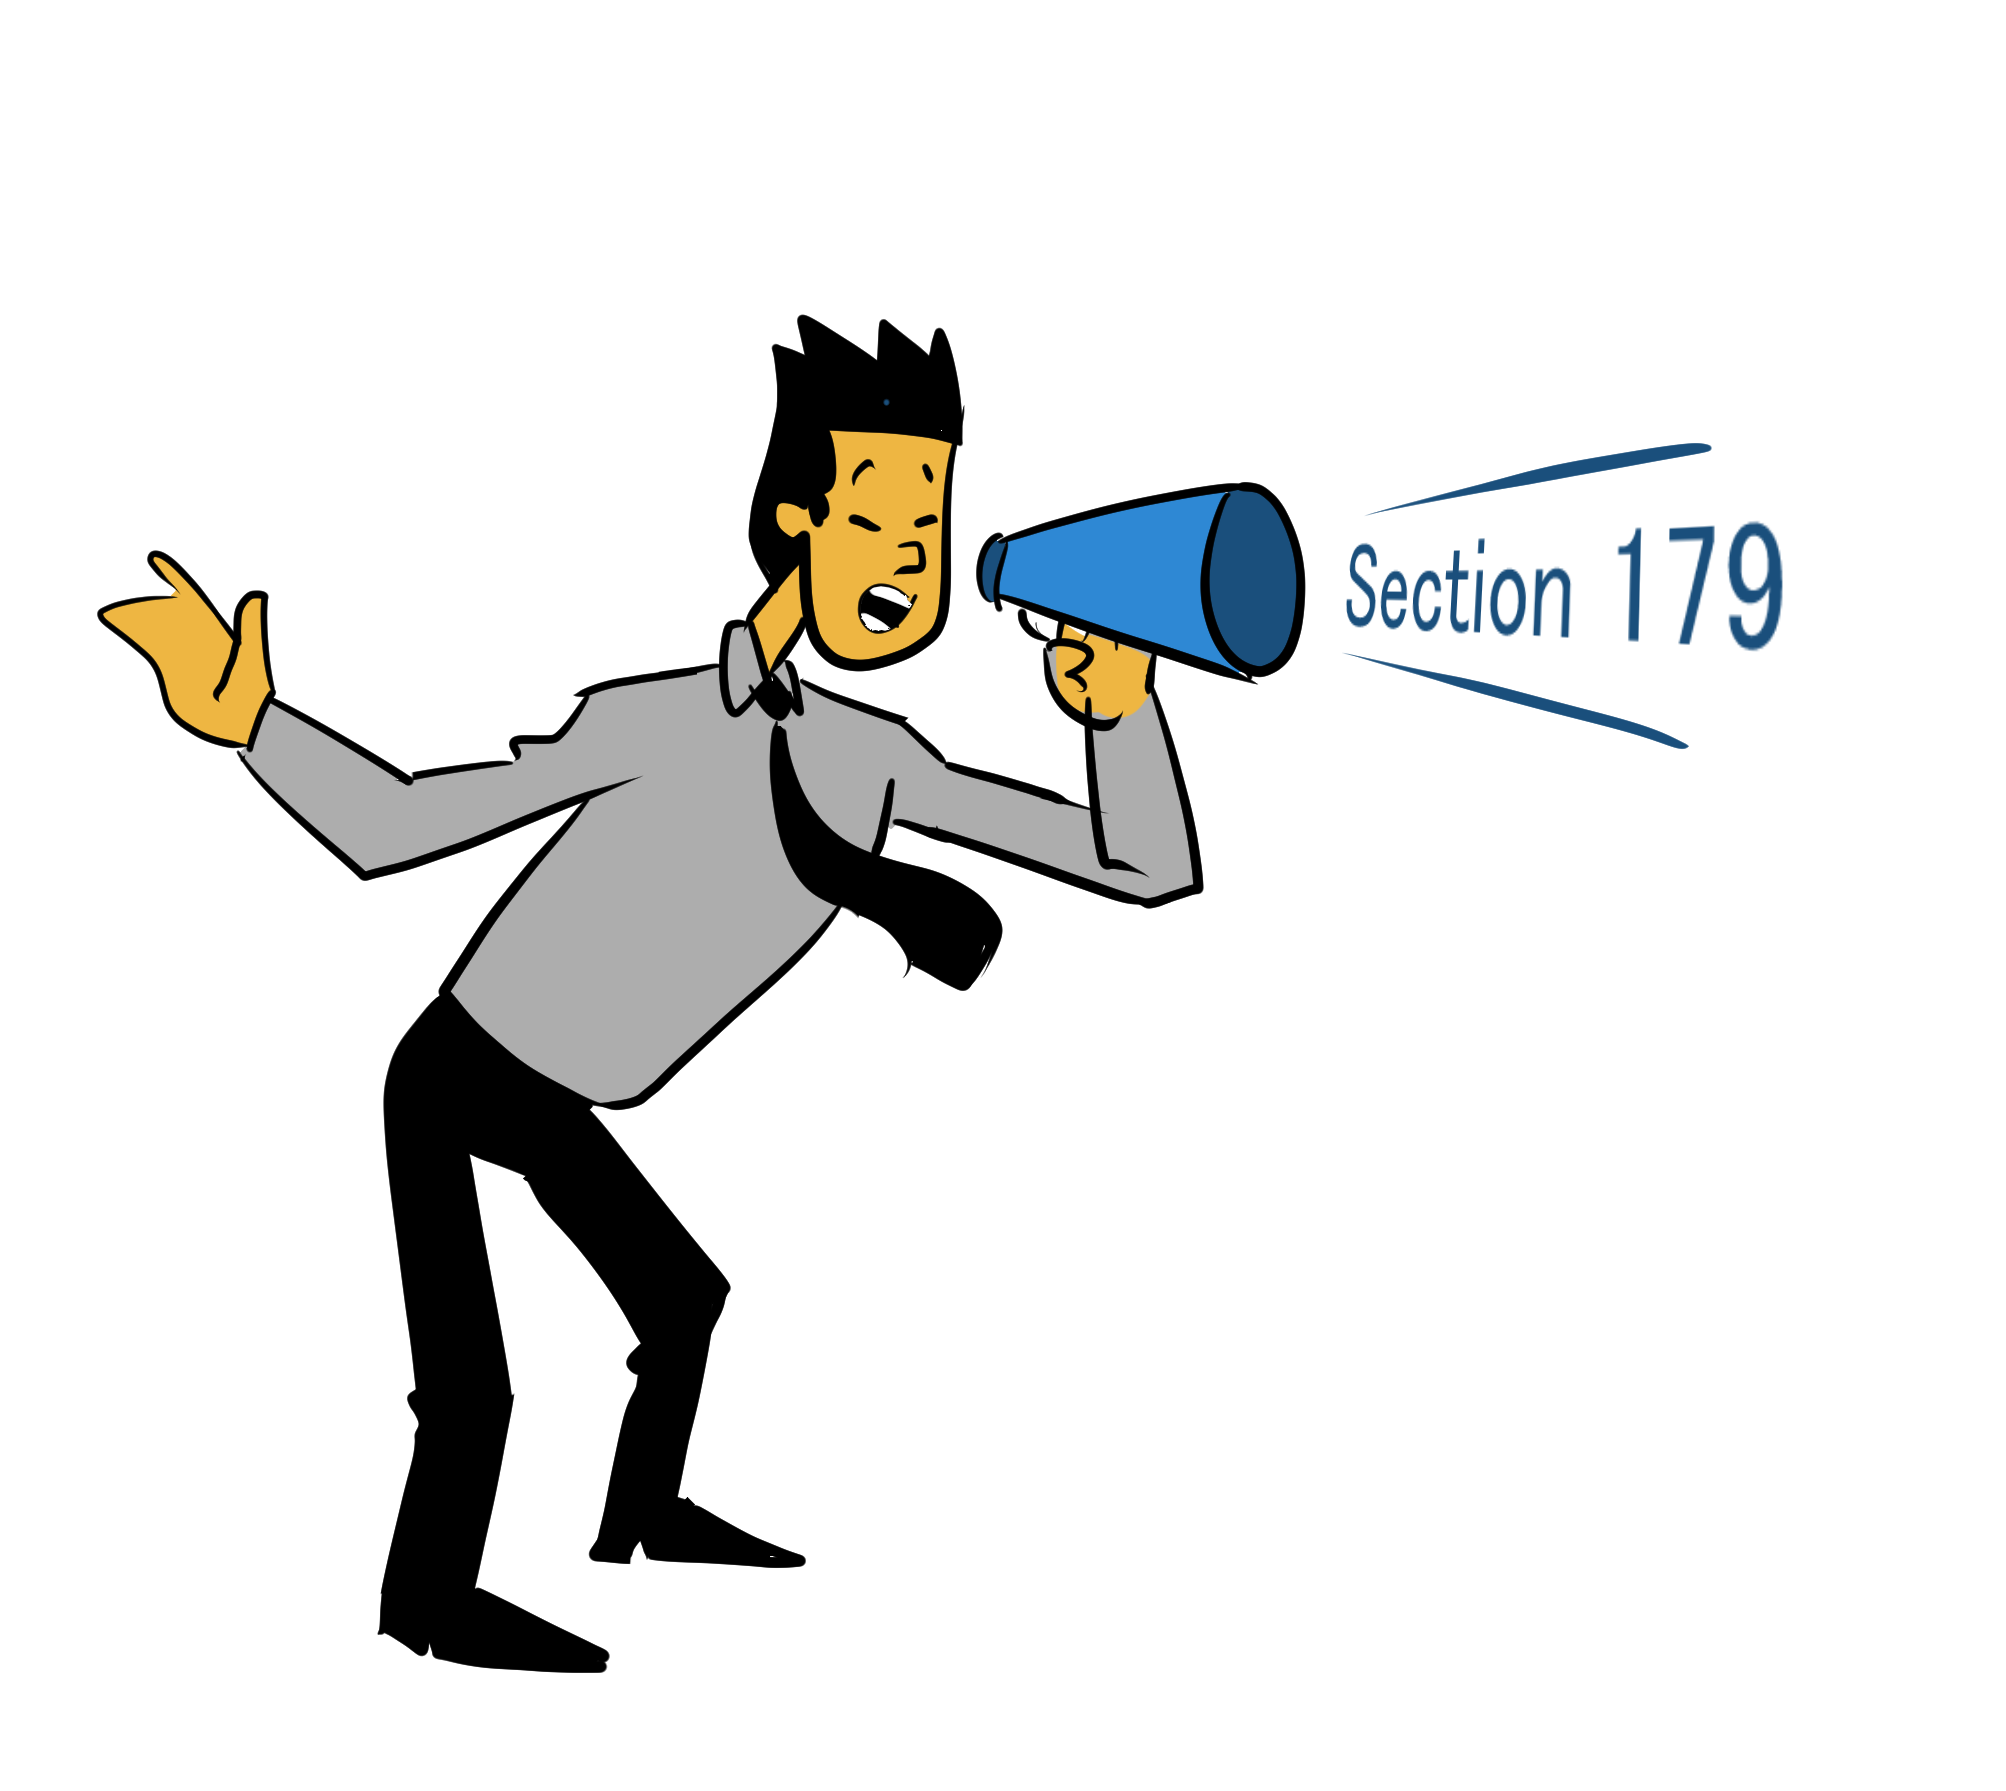 section 179 sales pitch